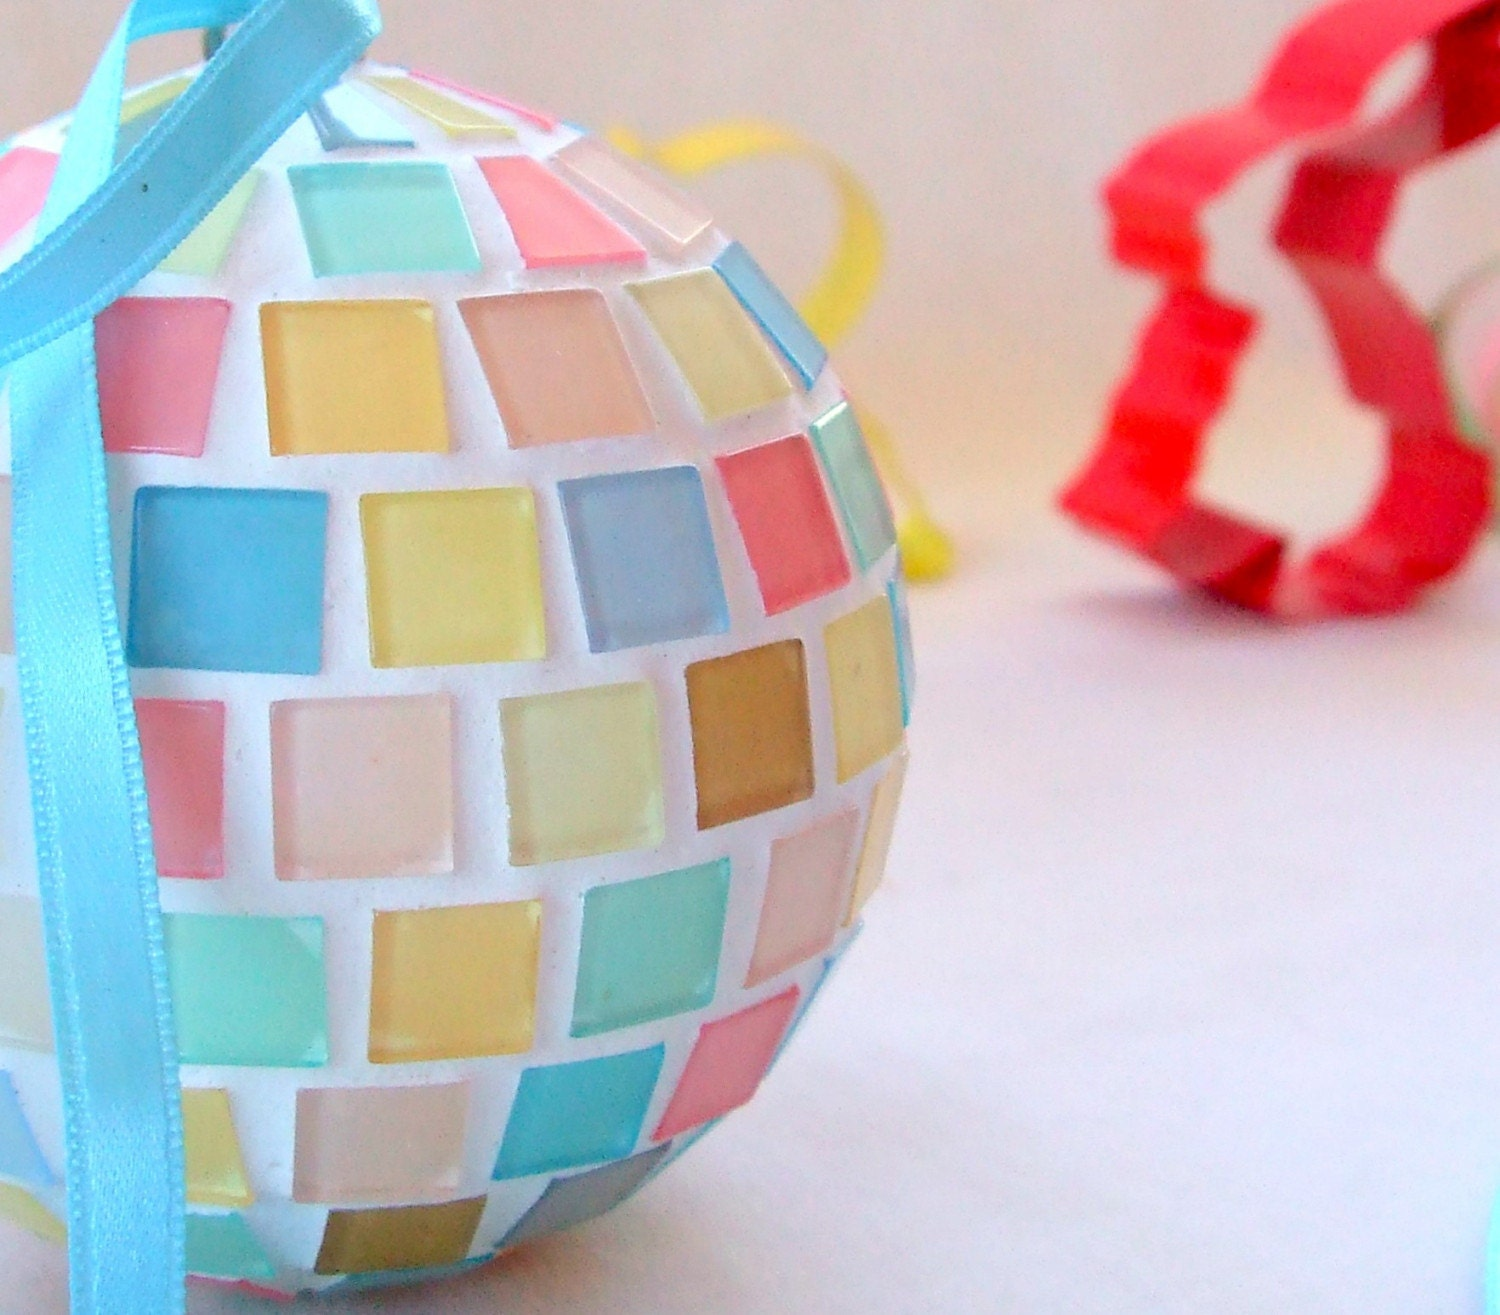 Pastel hanging ball - decorative mosaic